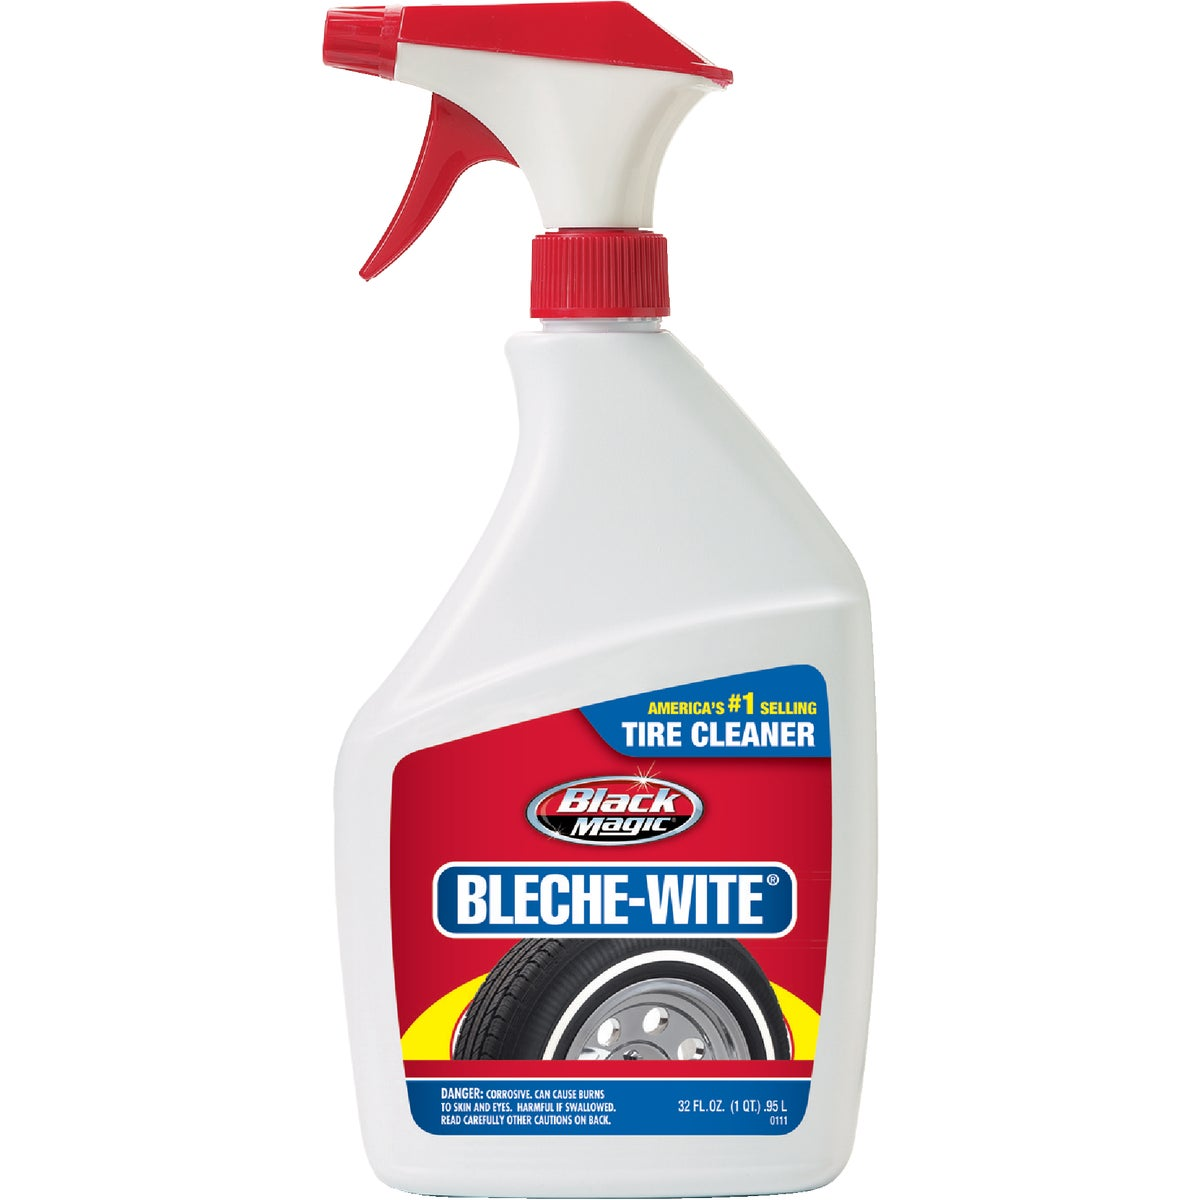 32OZ BW TIRE CLEANER - 800002224 by Itw Global Brands